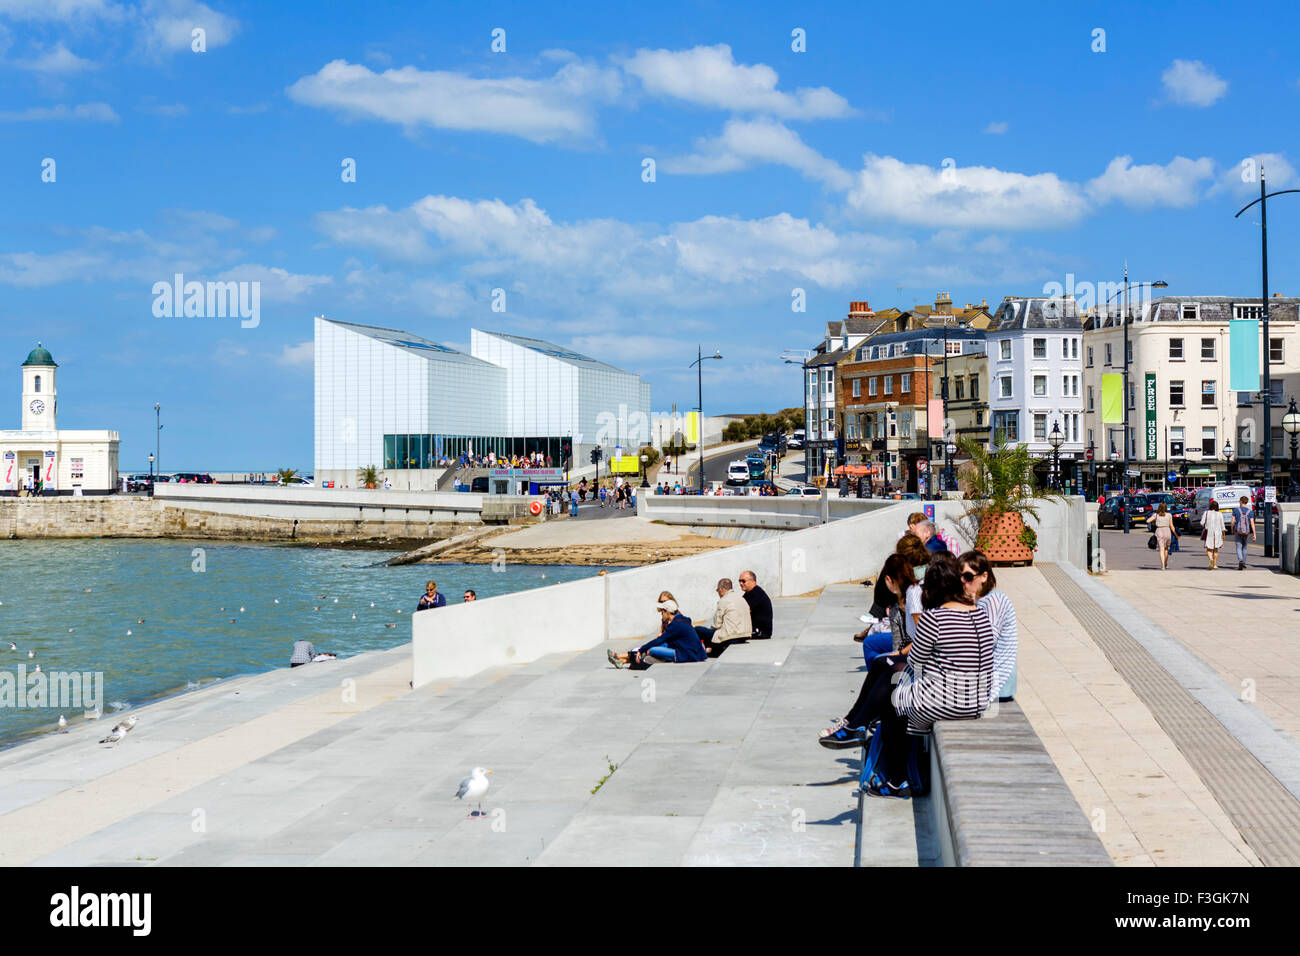 The promenade and Turner Contemporary art gallery in Margate, Kent, England, UK - Stock Image